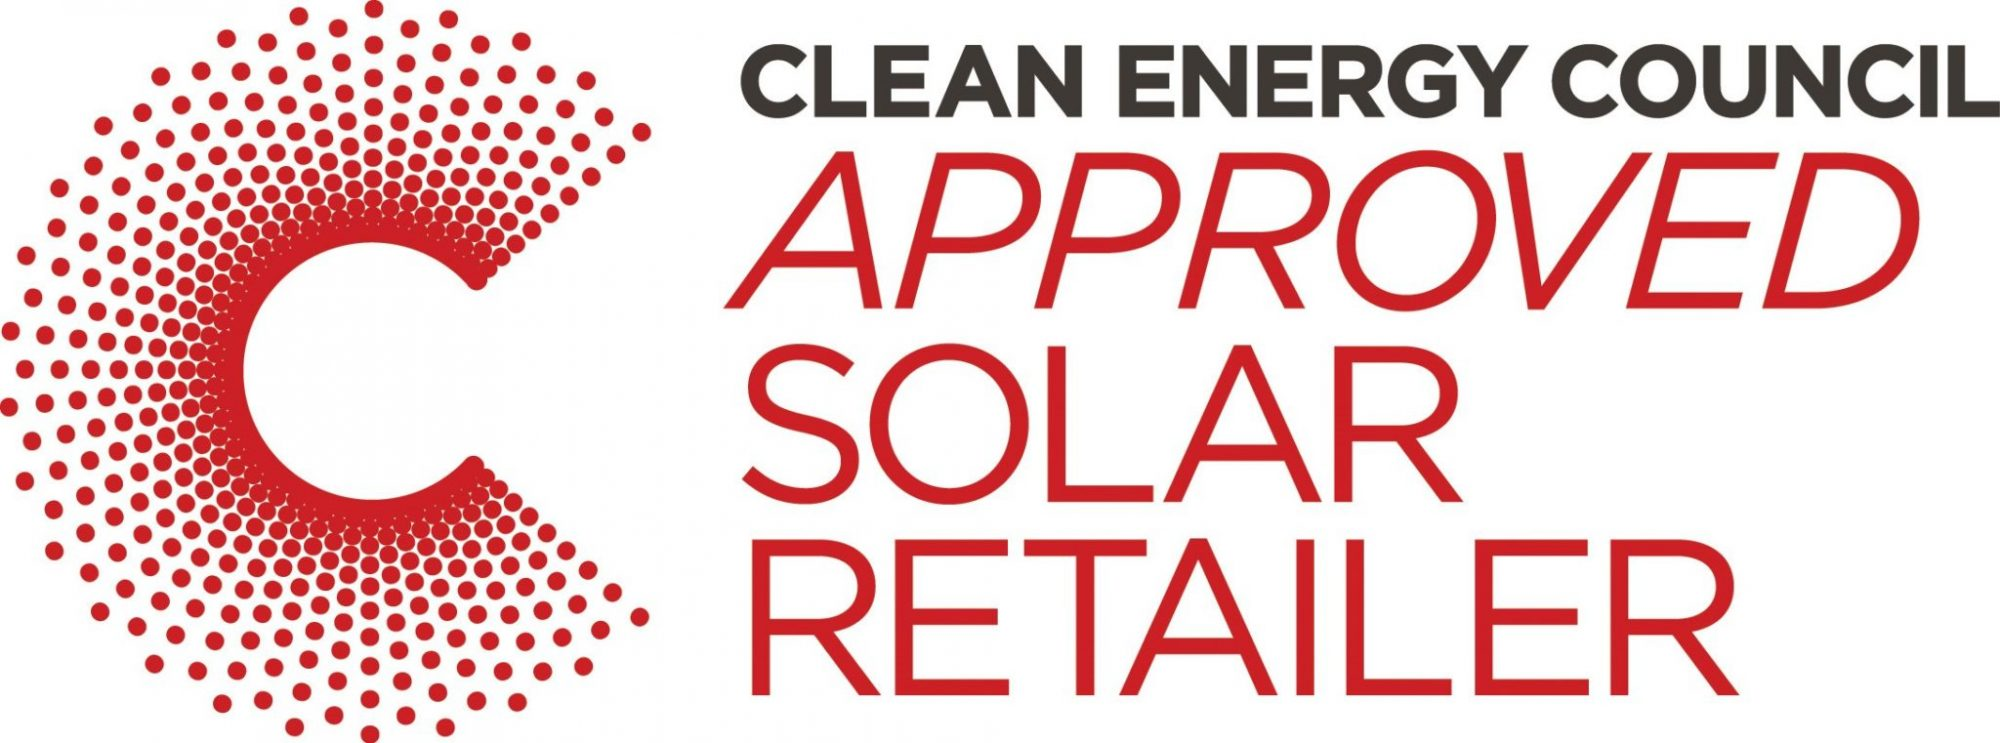 Big Sky Energy CEC Approved Retailer